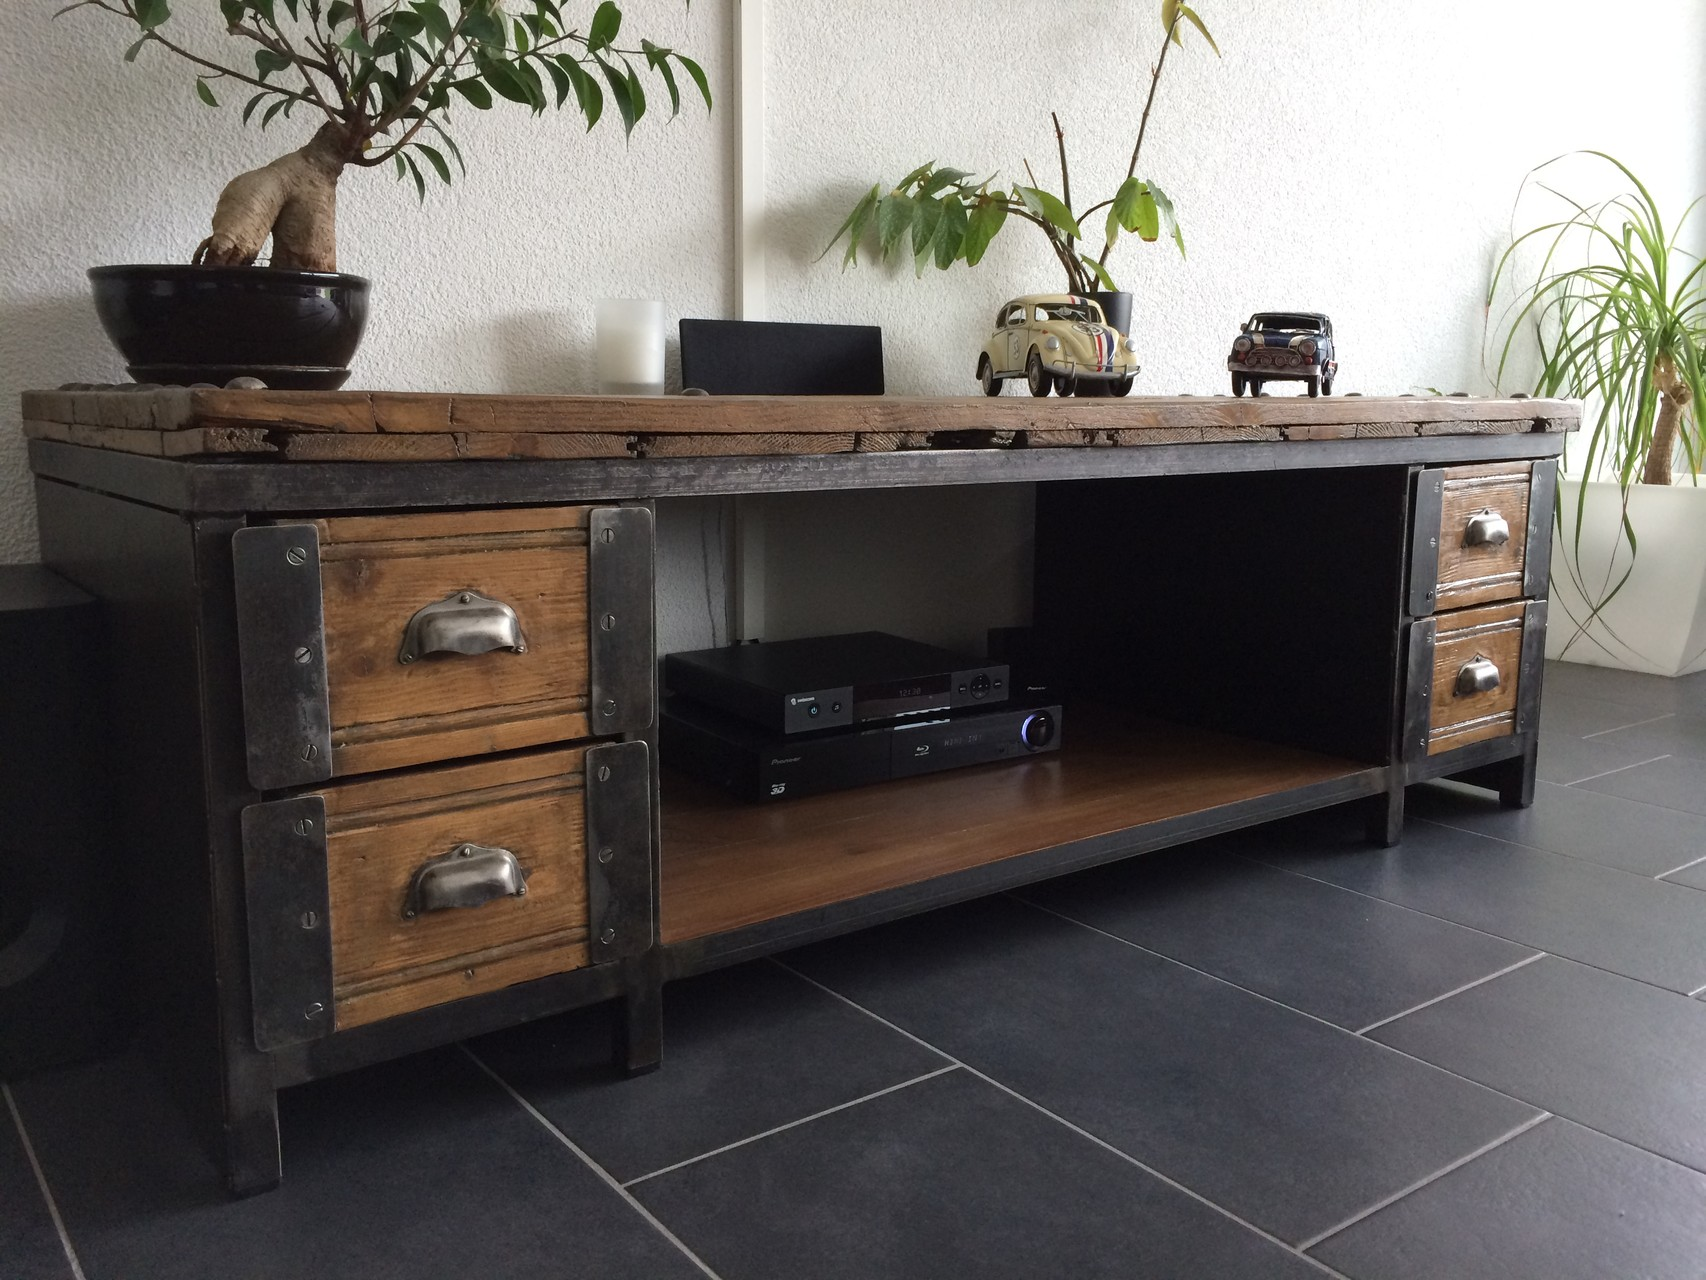 Meuble Tv Industriel Occasion Maison Design Hosnya Com # Meuble Vintage Occasion